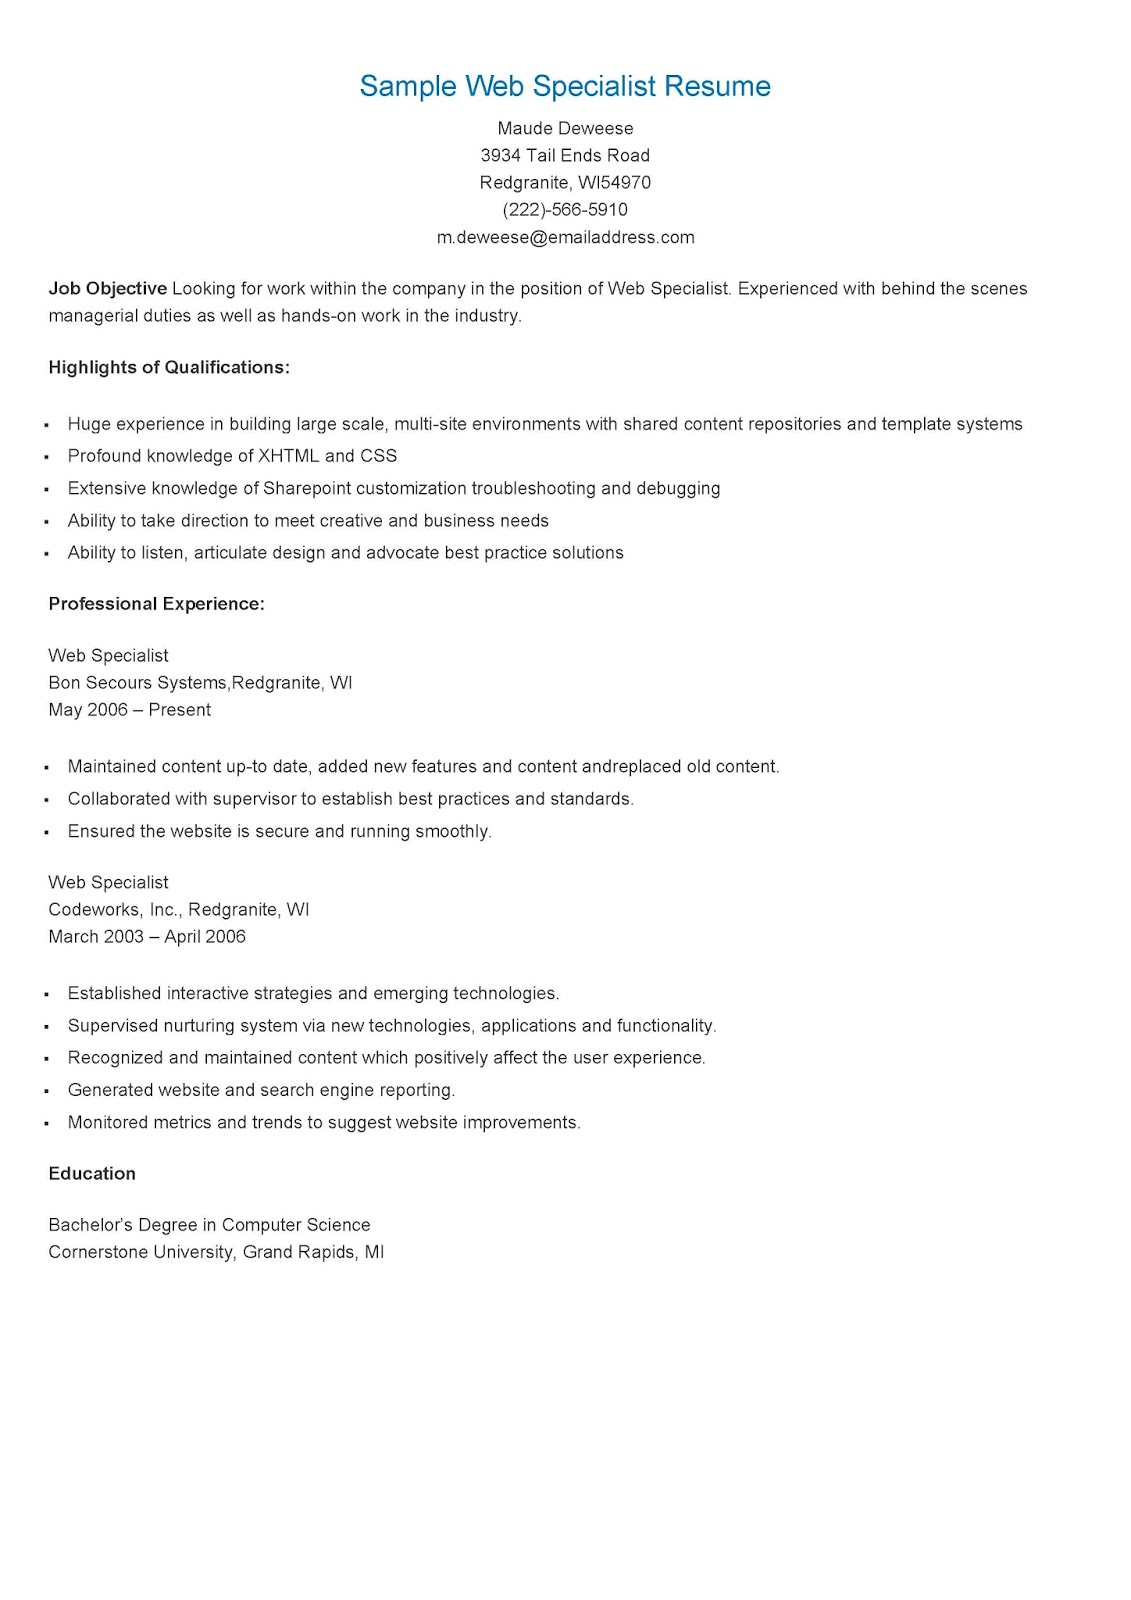 Learning And Development Specialist Resume | Talent Acquisition ...